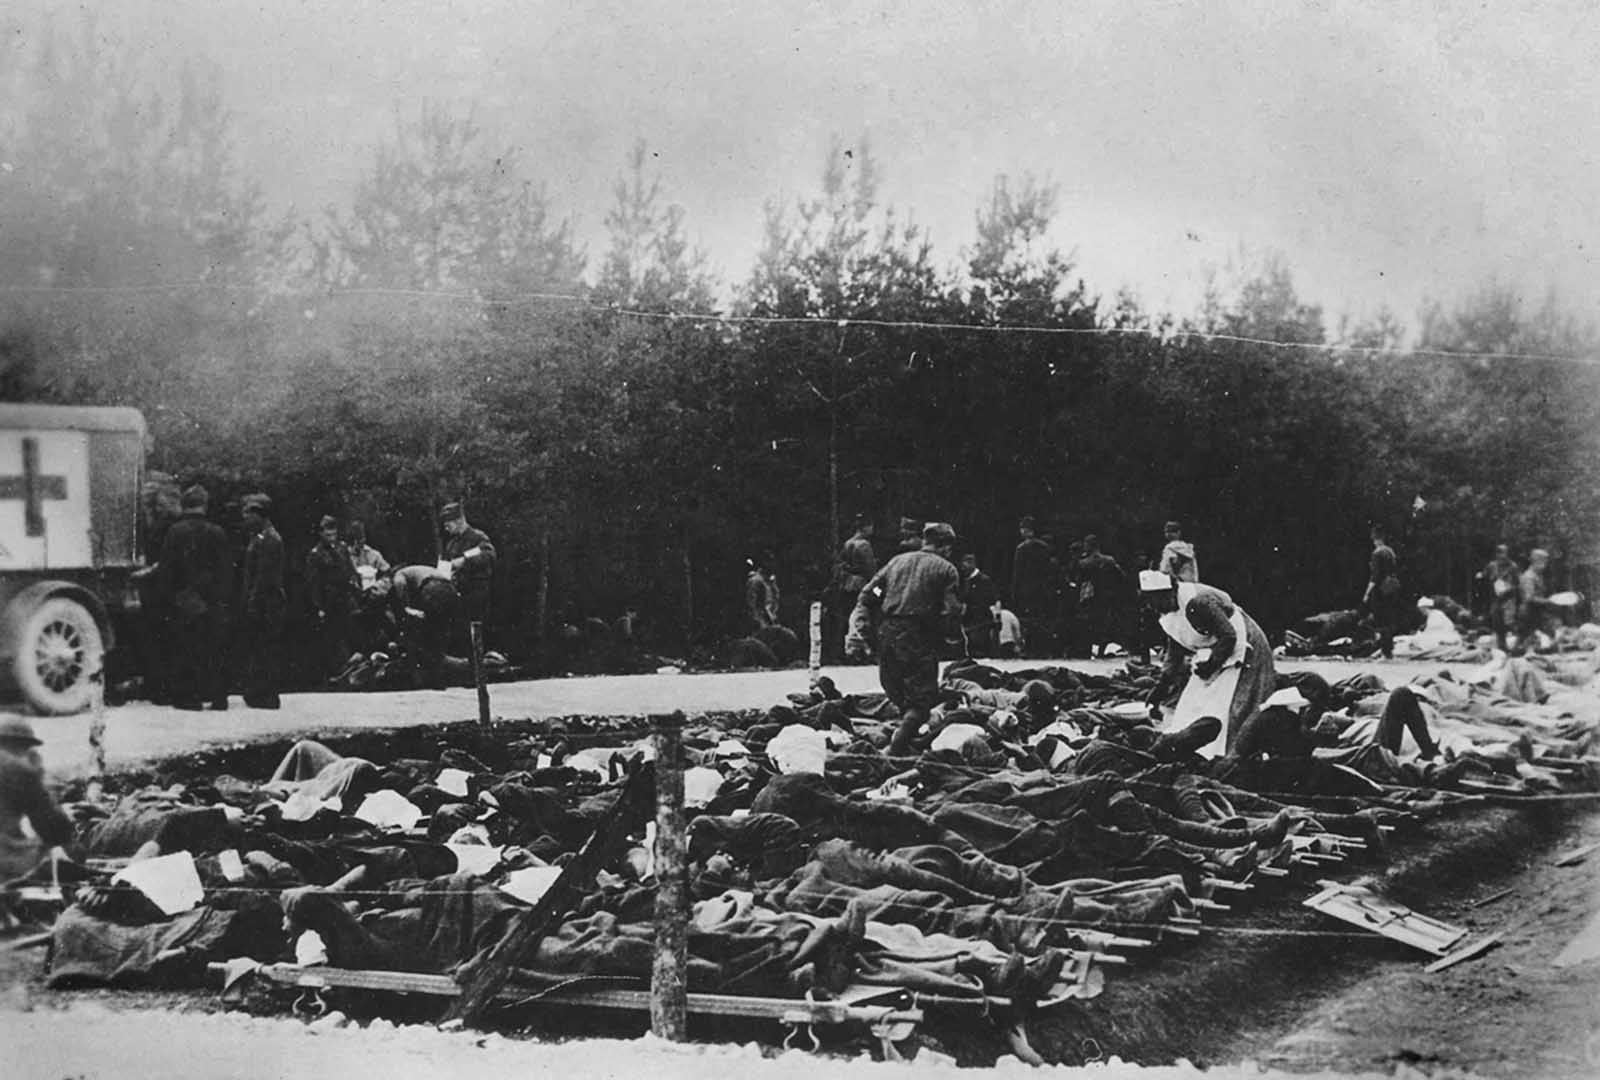 Gassed patients are treated at the 326th Field Hospital near Royaumeix, France, on August 8, 1918. The hospital was not large enough to accommodate the large number of patients.